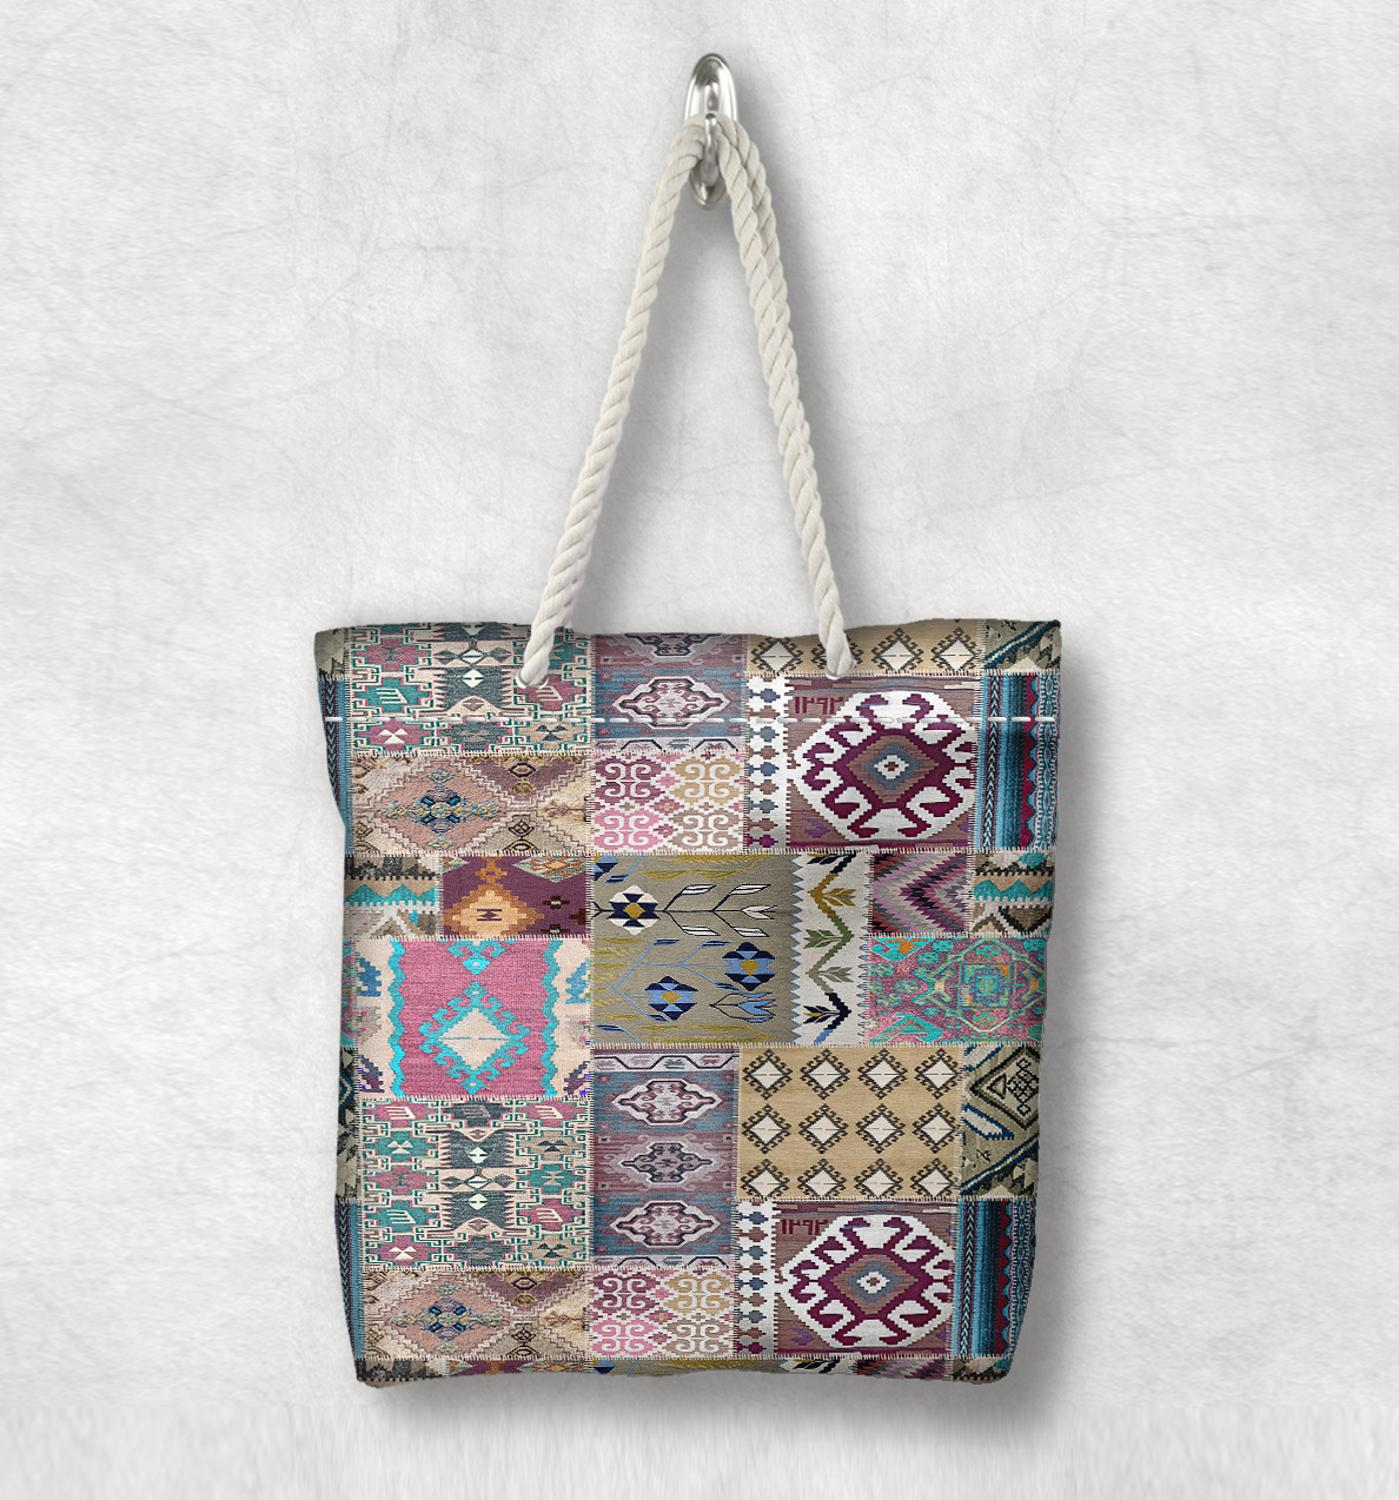 Else Blue Gray Patchwork Kilim Design Anatolia Antique White Rope Handle Canvas Bag Cotton Canvas Zippered Tote Bag Shoulder Bag